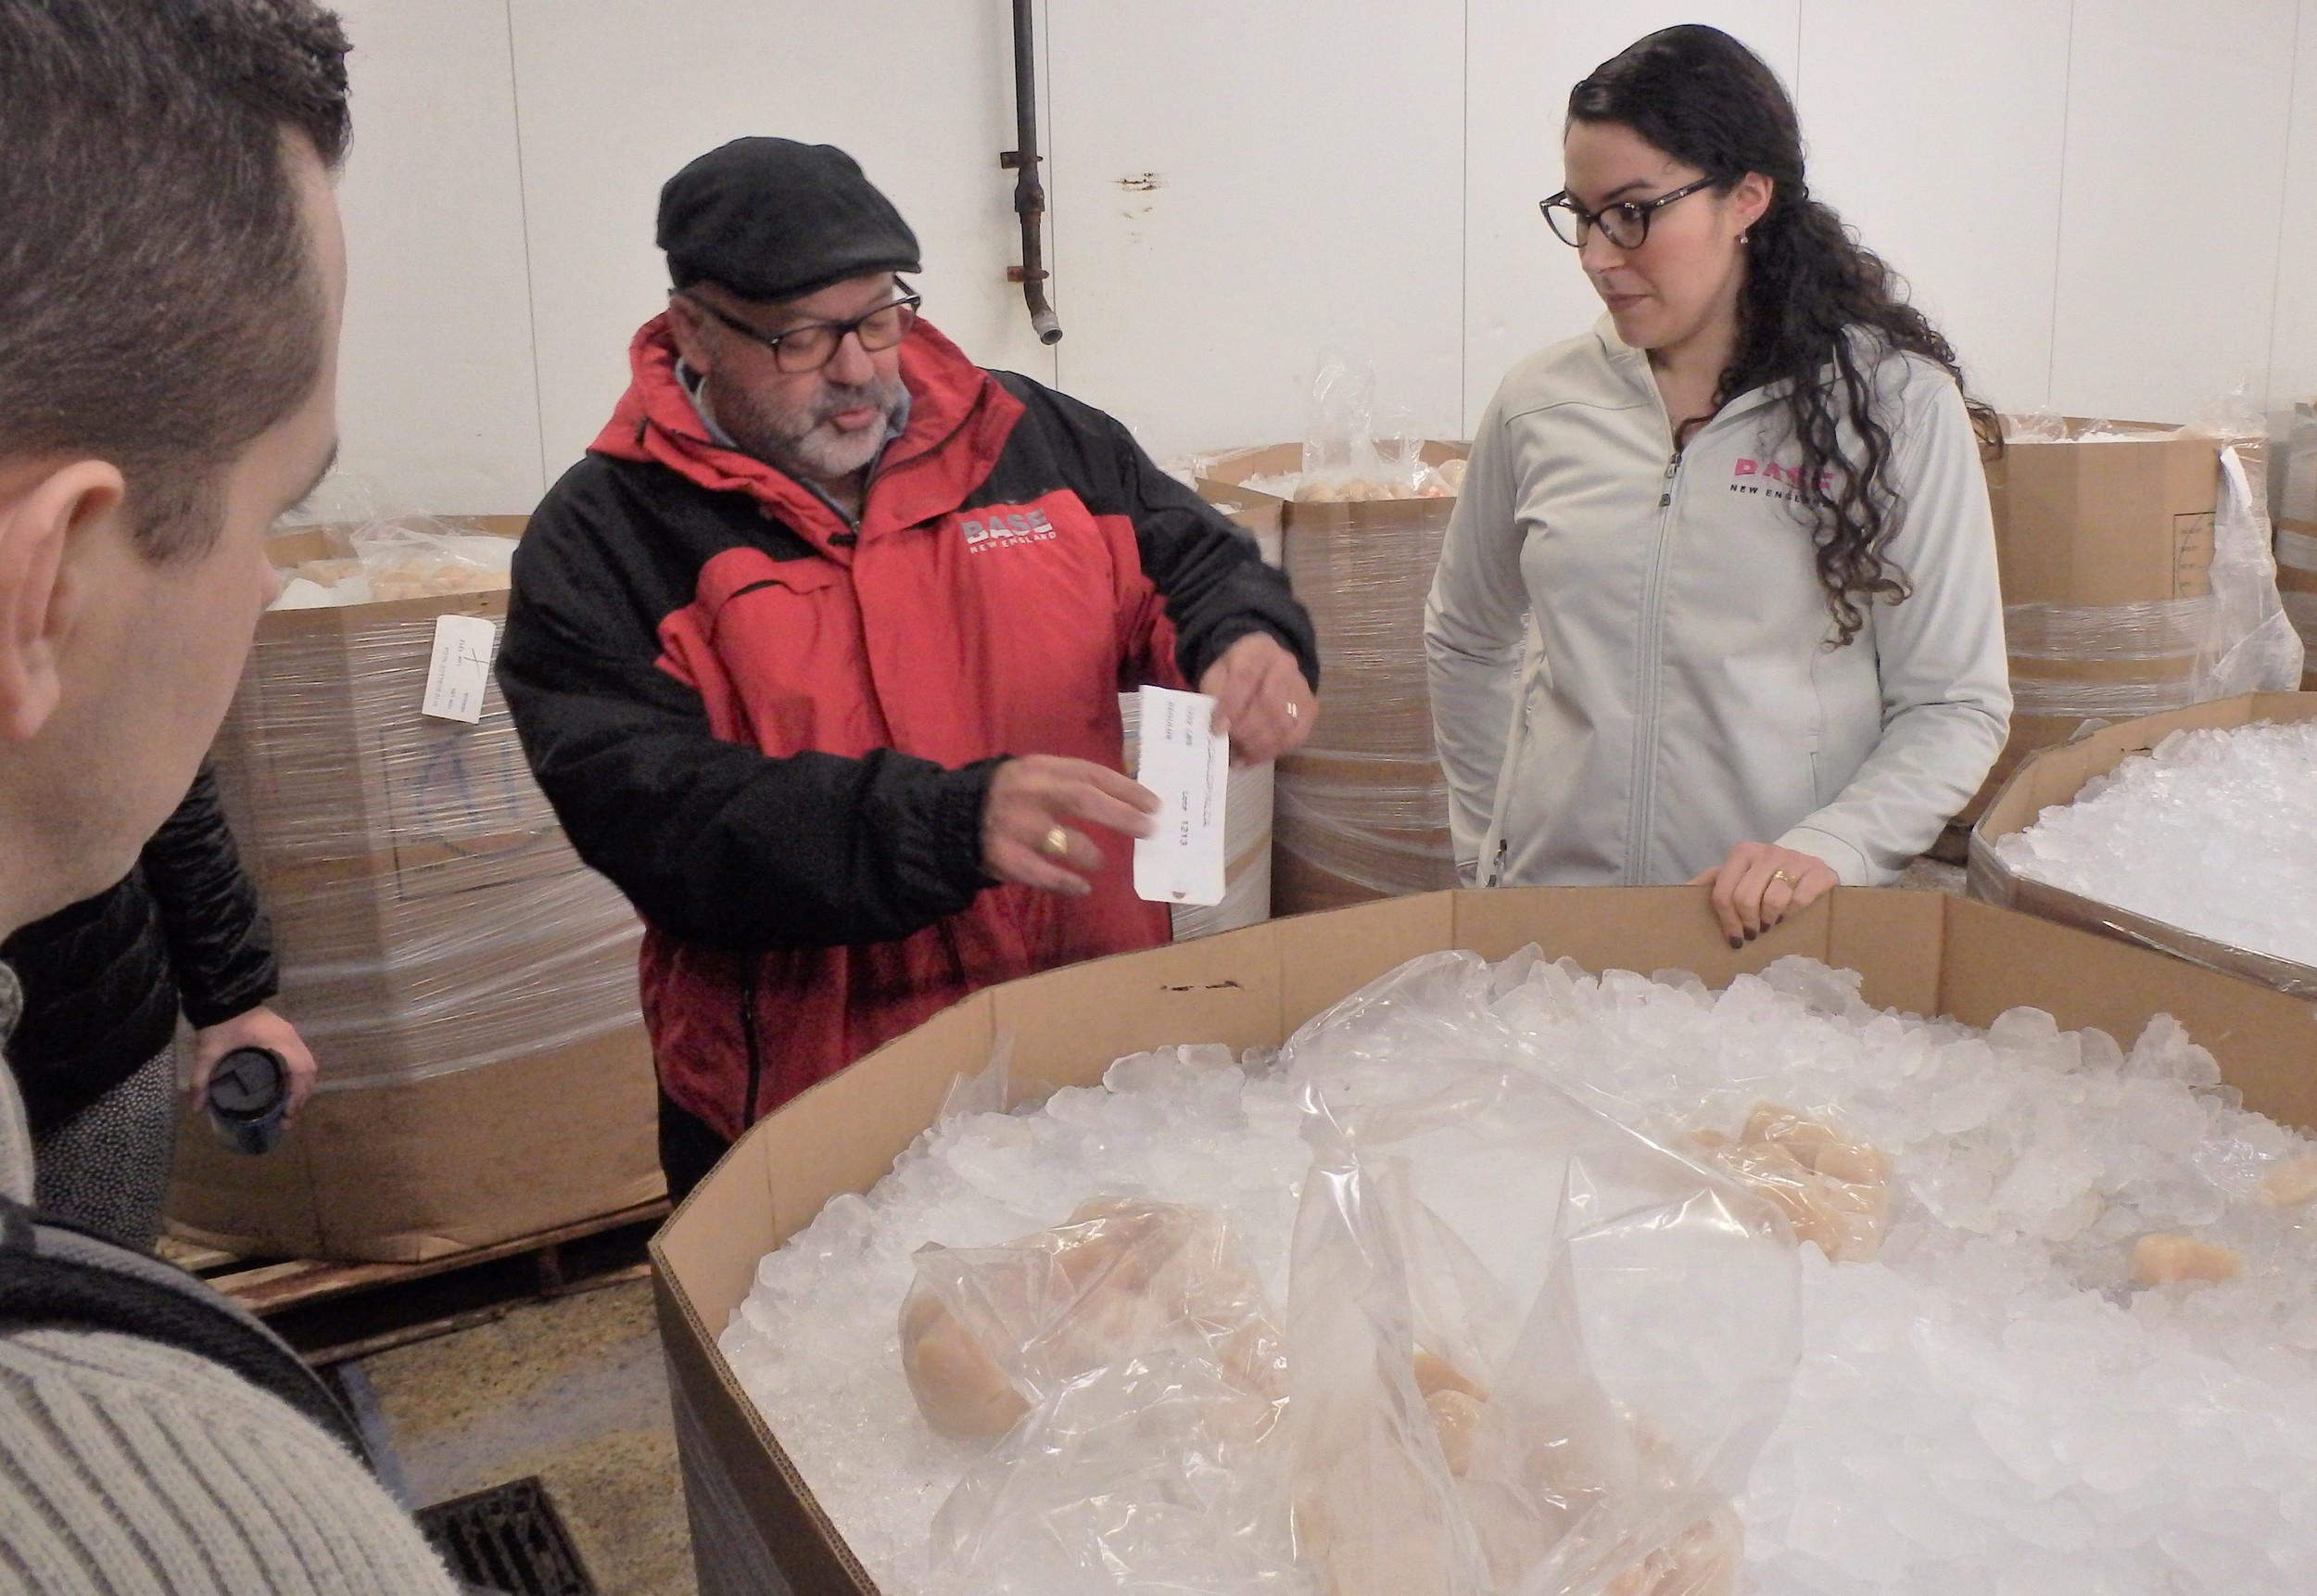 Ritchie Canastra and niece Cassie Canastra of BASE New England in New Bedford, review scallop quality with participants in the Marine Resources Education Program. At $11/pound the bin they are standing over contains about $11,000 worth of sea scallops.